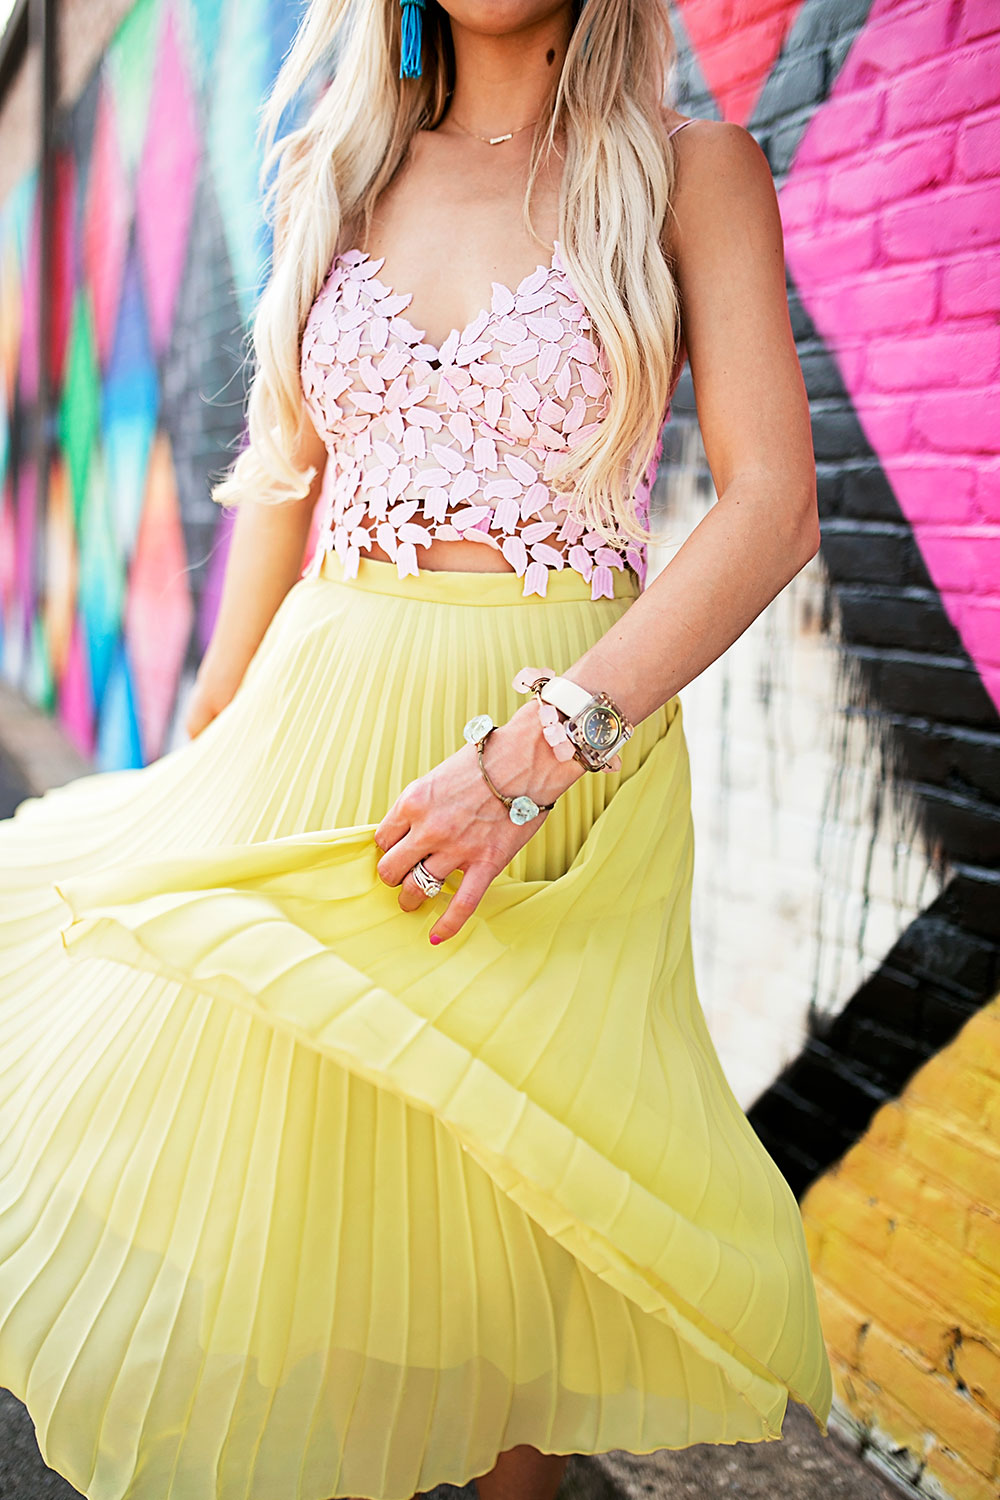 vandi-fair-dallas-fashion-blog-lauren-vandiver-southern-texas-travel-blogger-color-colorful-nordstrom-topshop-chiffon-pleated-midi-skirt-neon-yellow-bardot-flora-lace-crop-top-8